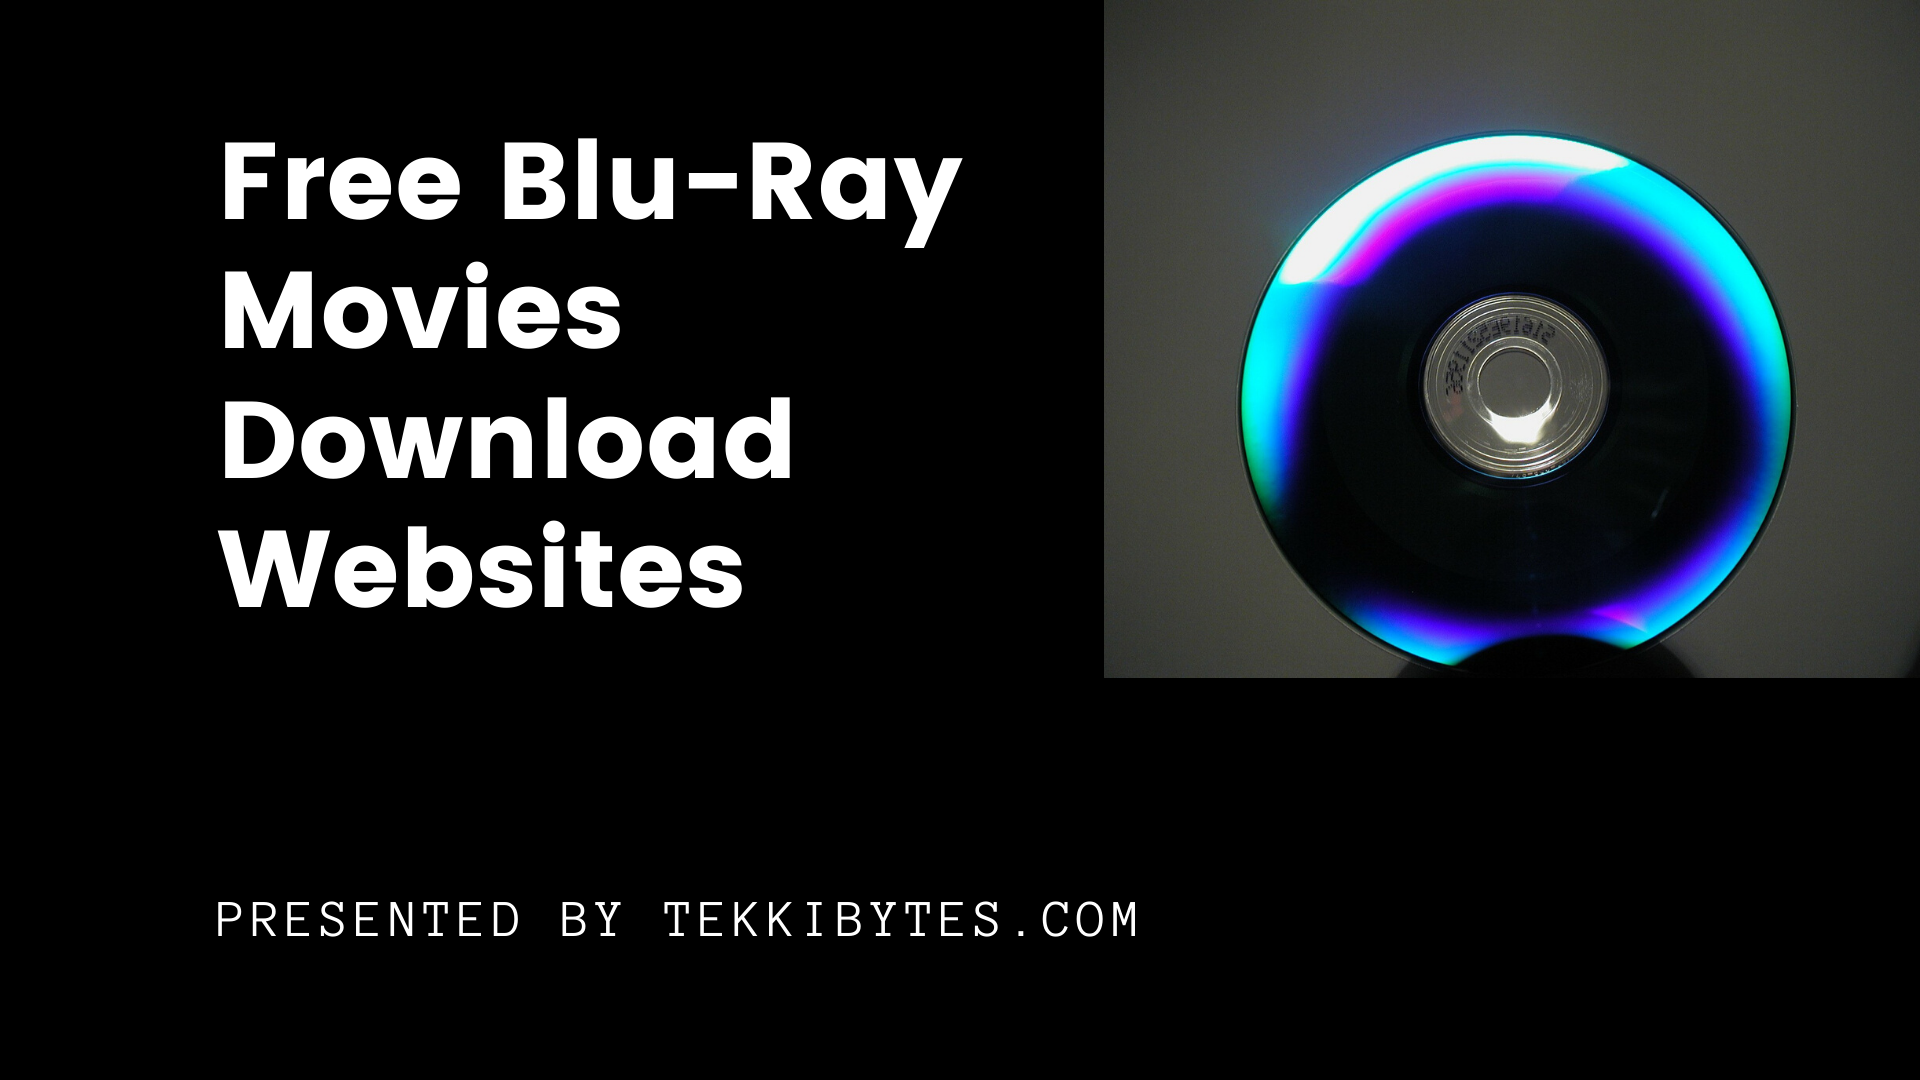 Best website for downloading hd movies for free | 1080p blu-ray.